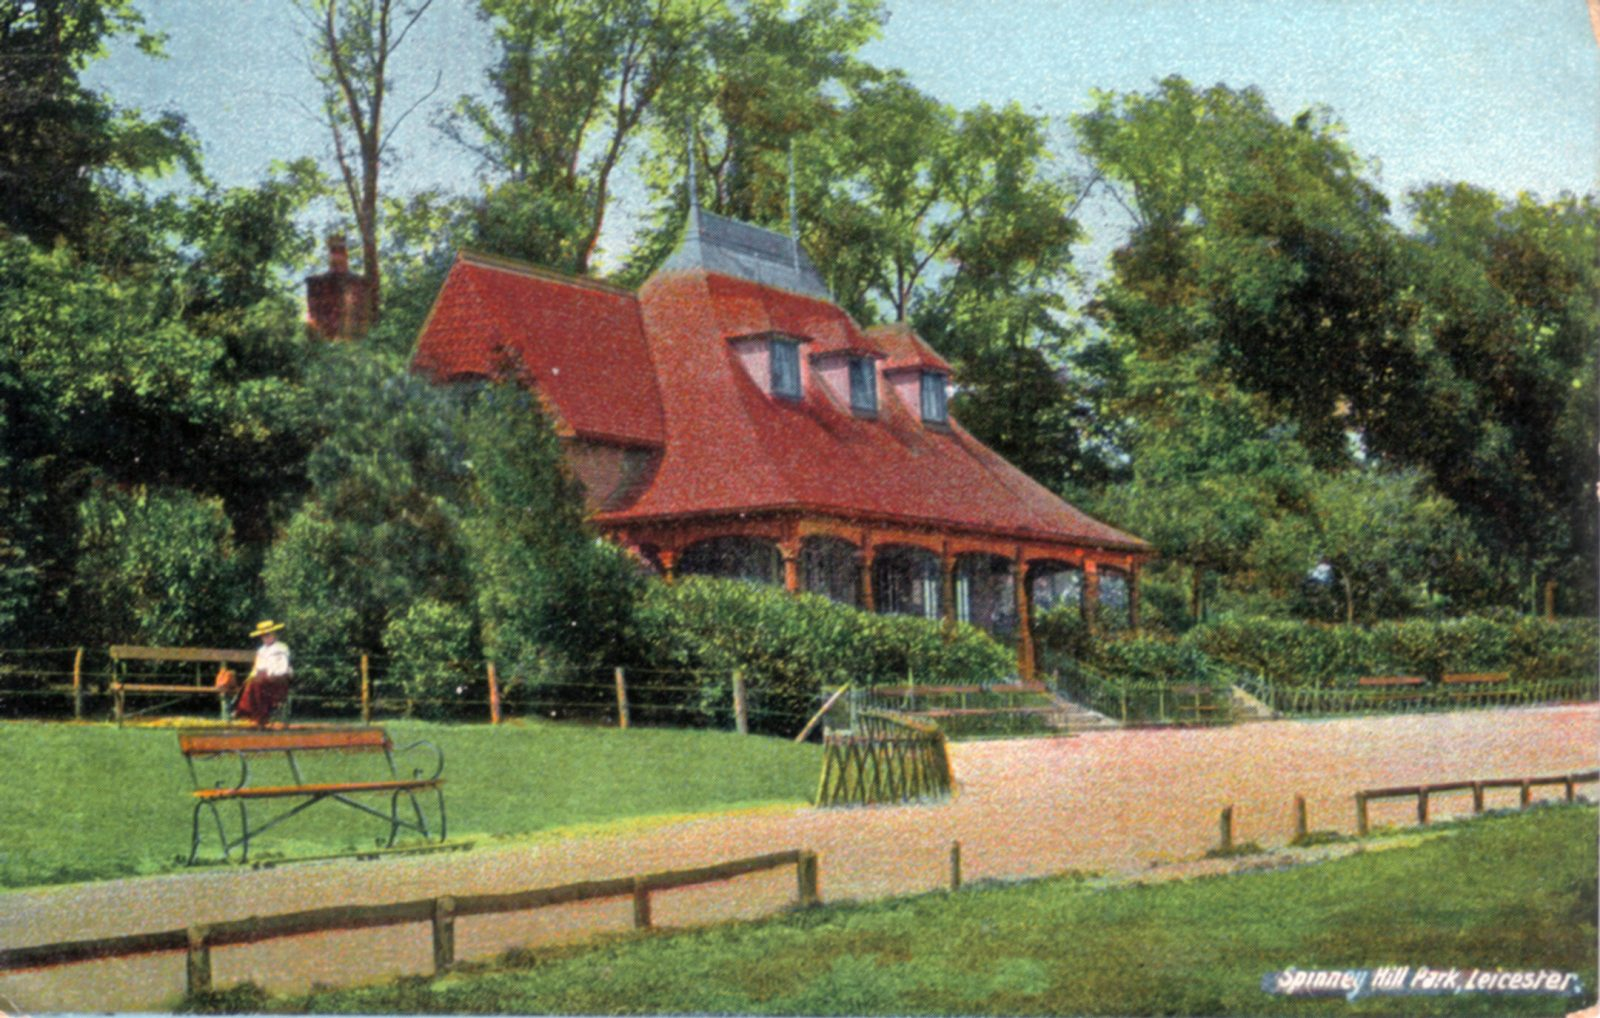 Spinney Hill Park, Leicester. 1901-1920: The Pavilion. Adult on seat. (File:1056)